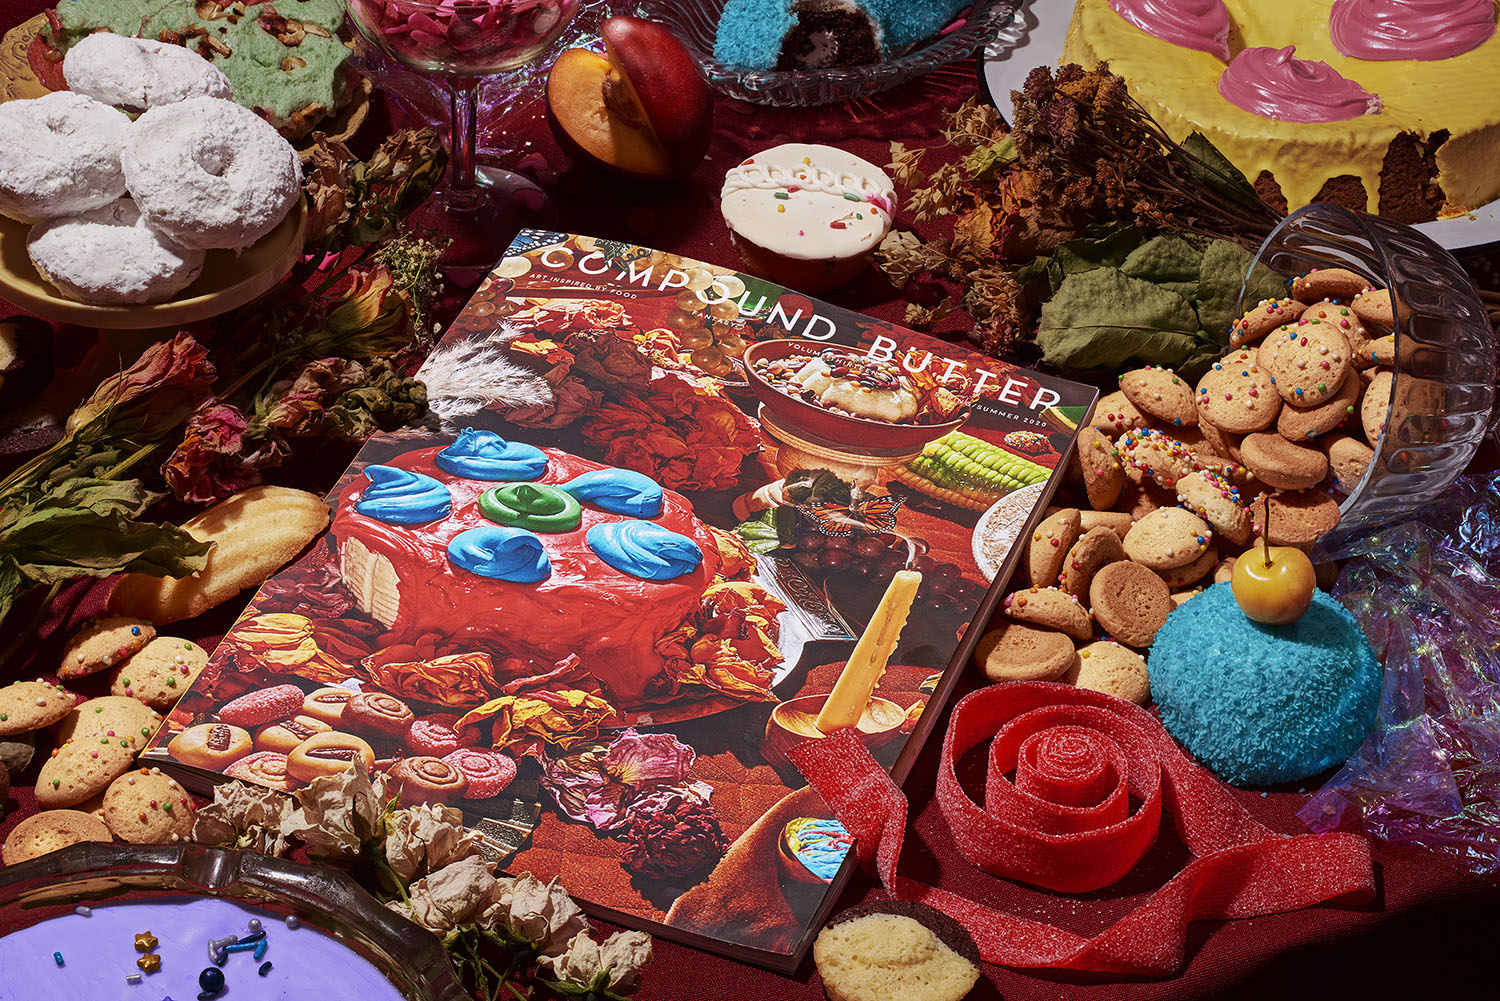 Promotional imagery for compound butter food and art magazine with cover photo - fantasy issue